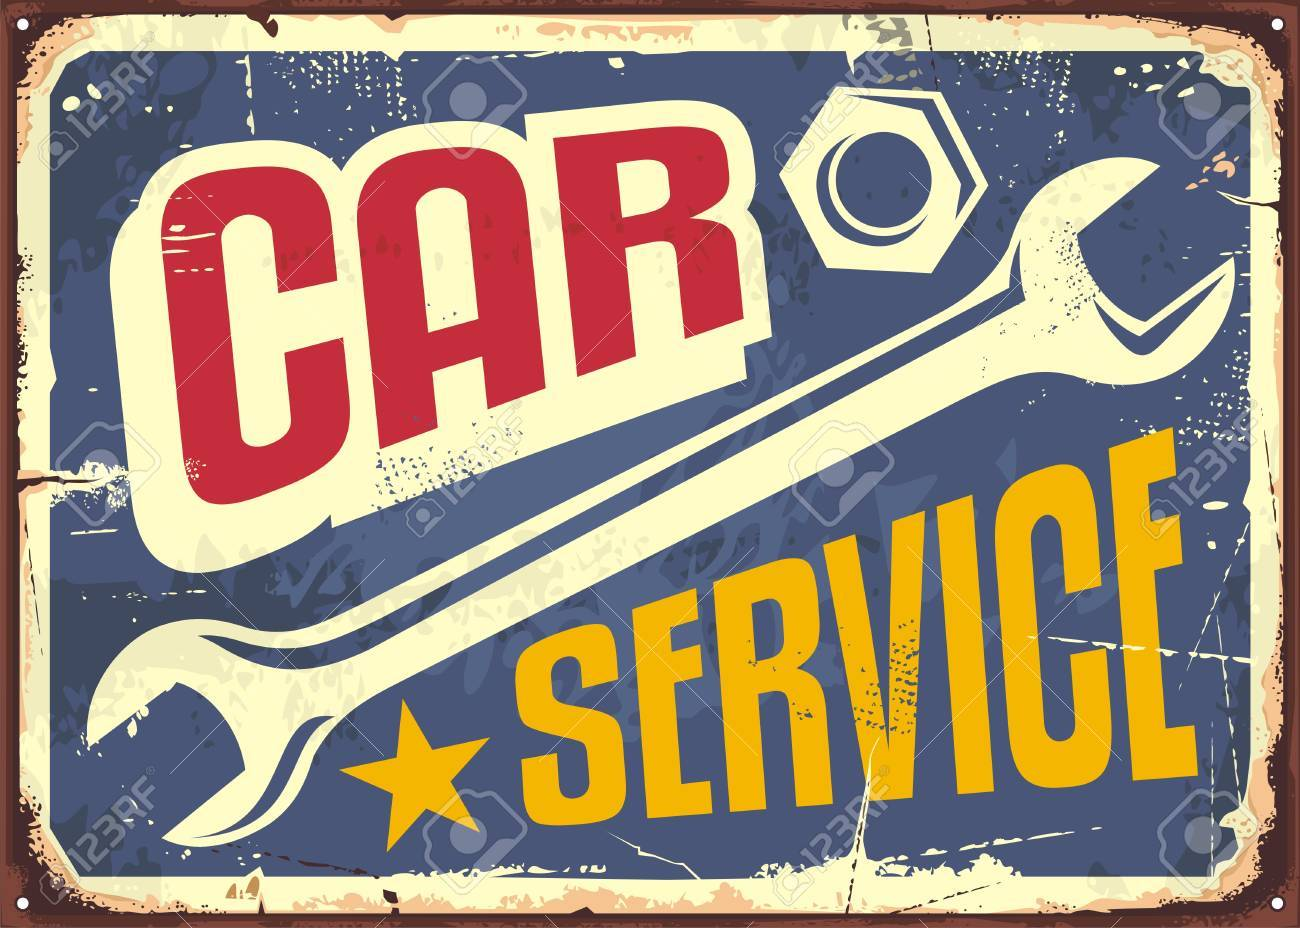 Car service vintage sign with wrench tool and creative letterhead - 81970726